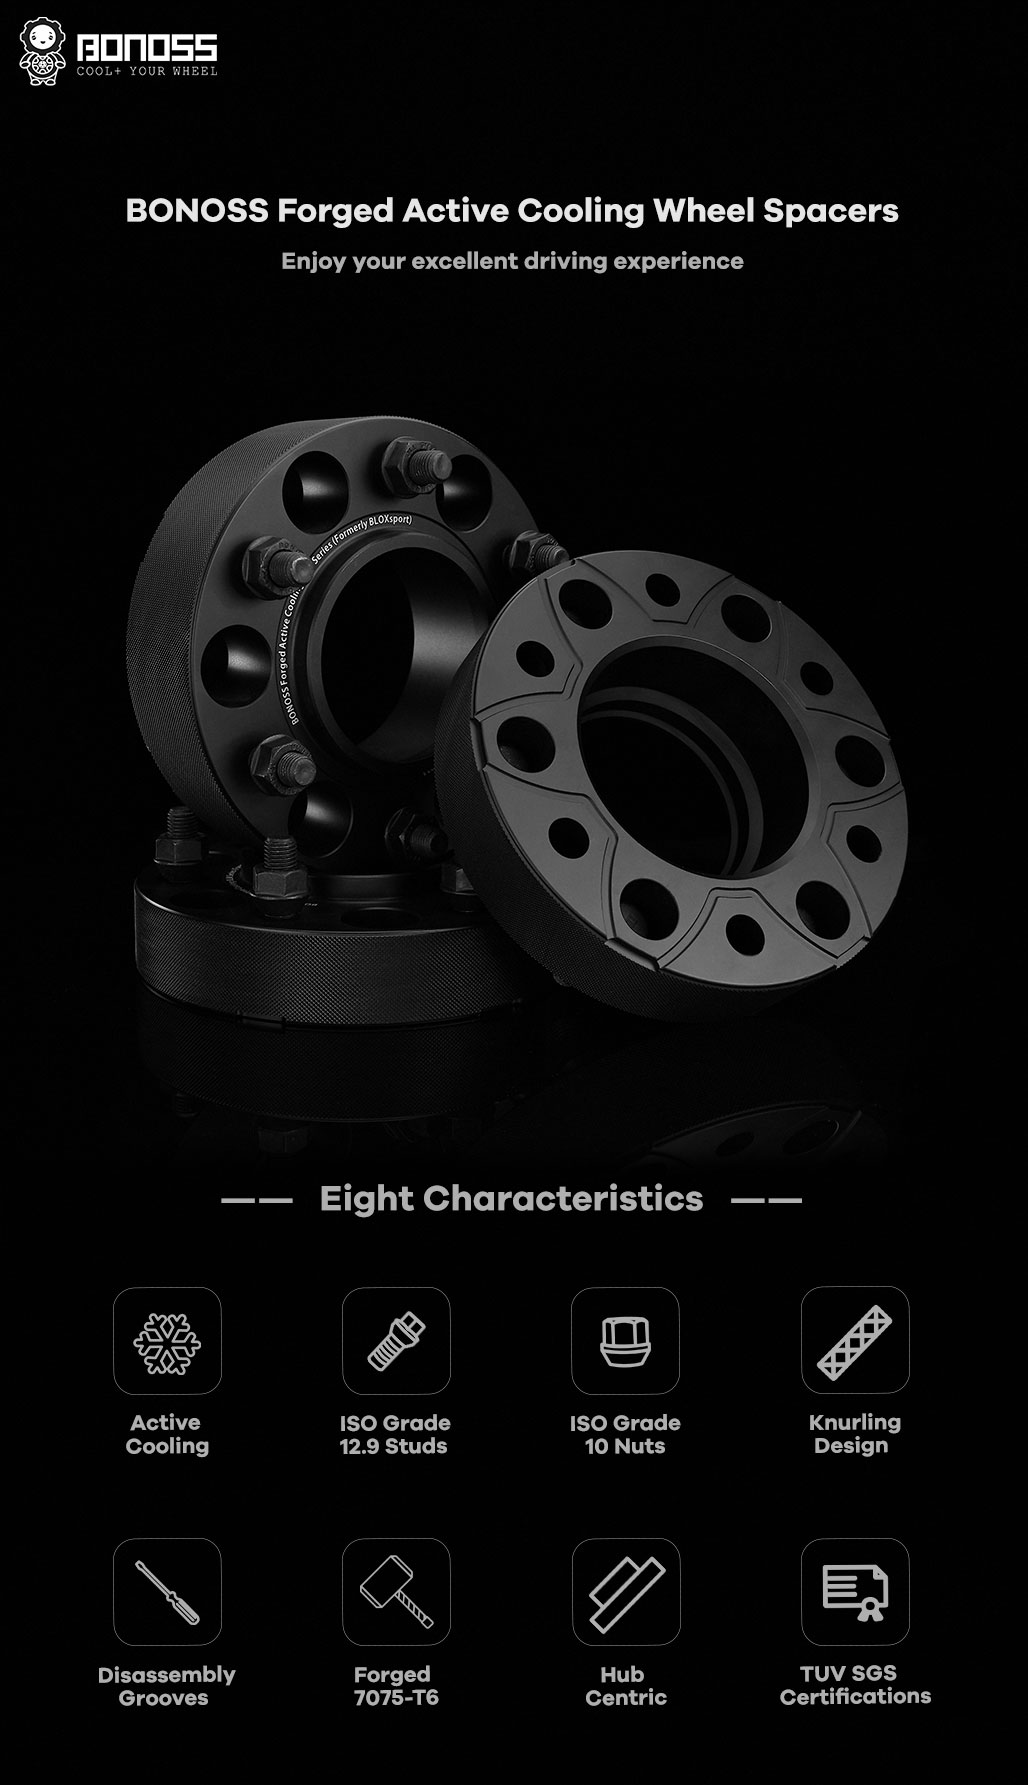 BONOSS-forged-active-cooling-wheel-spacer-for-mazda-bt50-6x139.7-93.1-12x1.5-7075t6-by-grace-1.